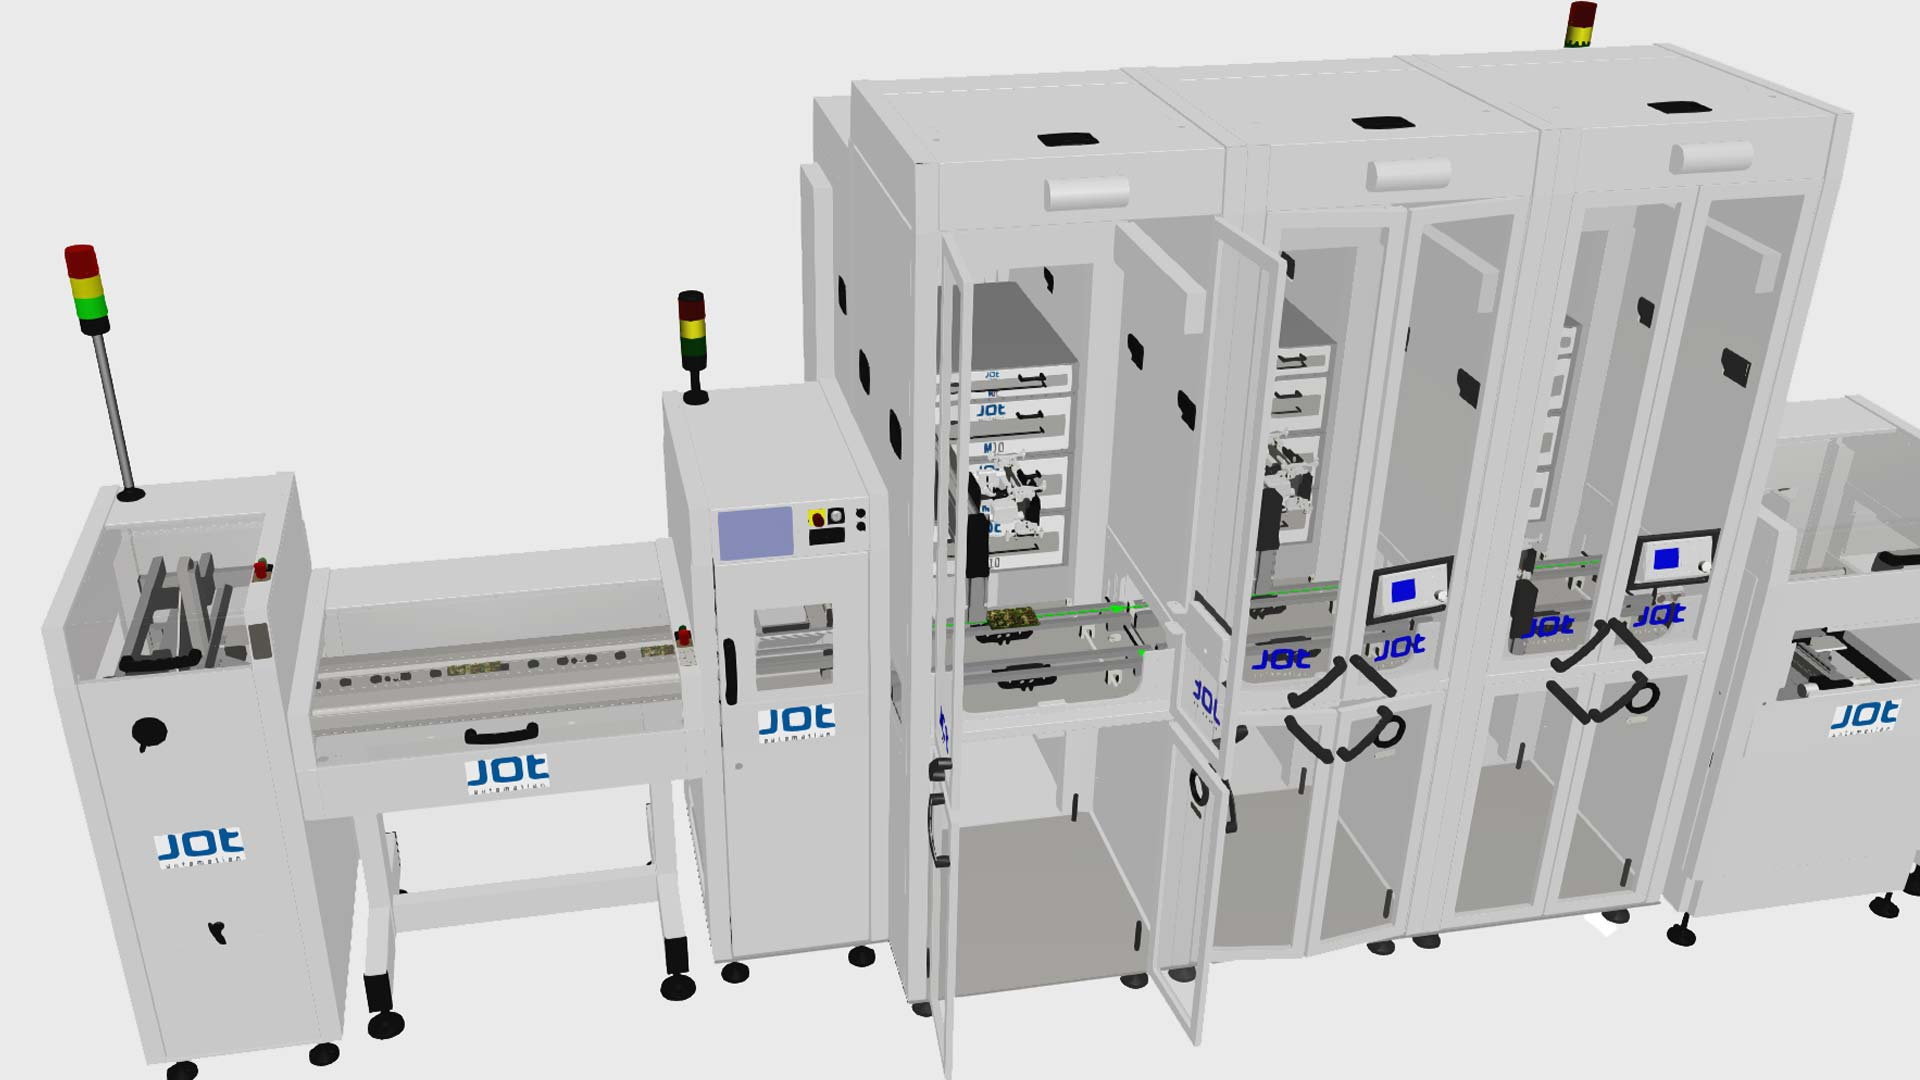 a rendering of JOT automation equipment